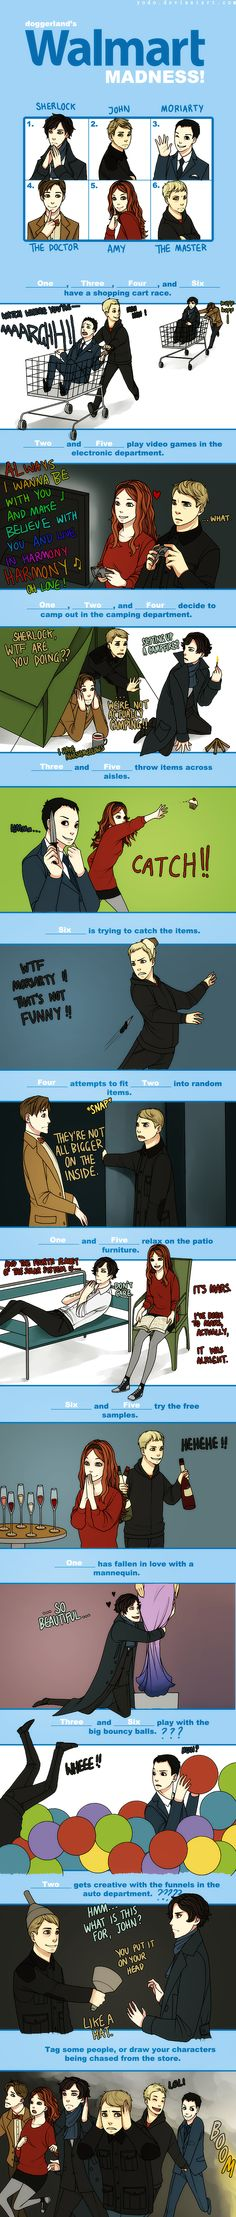 haha what the doctor who people and sherlock people do at walmart!